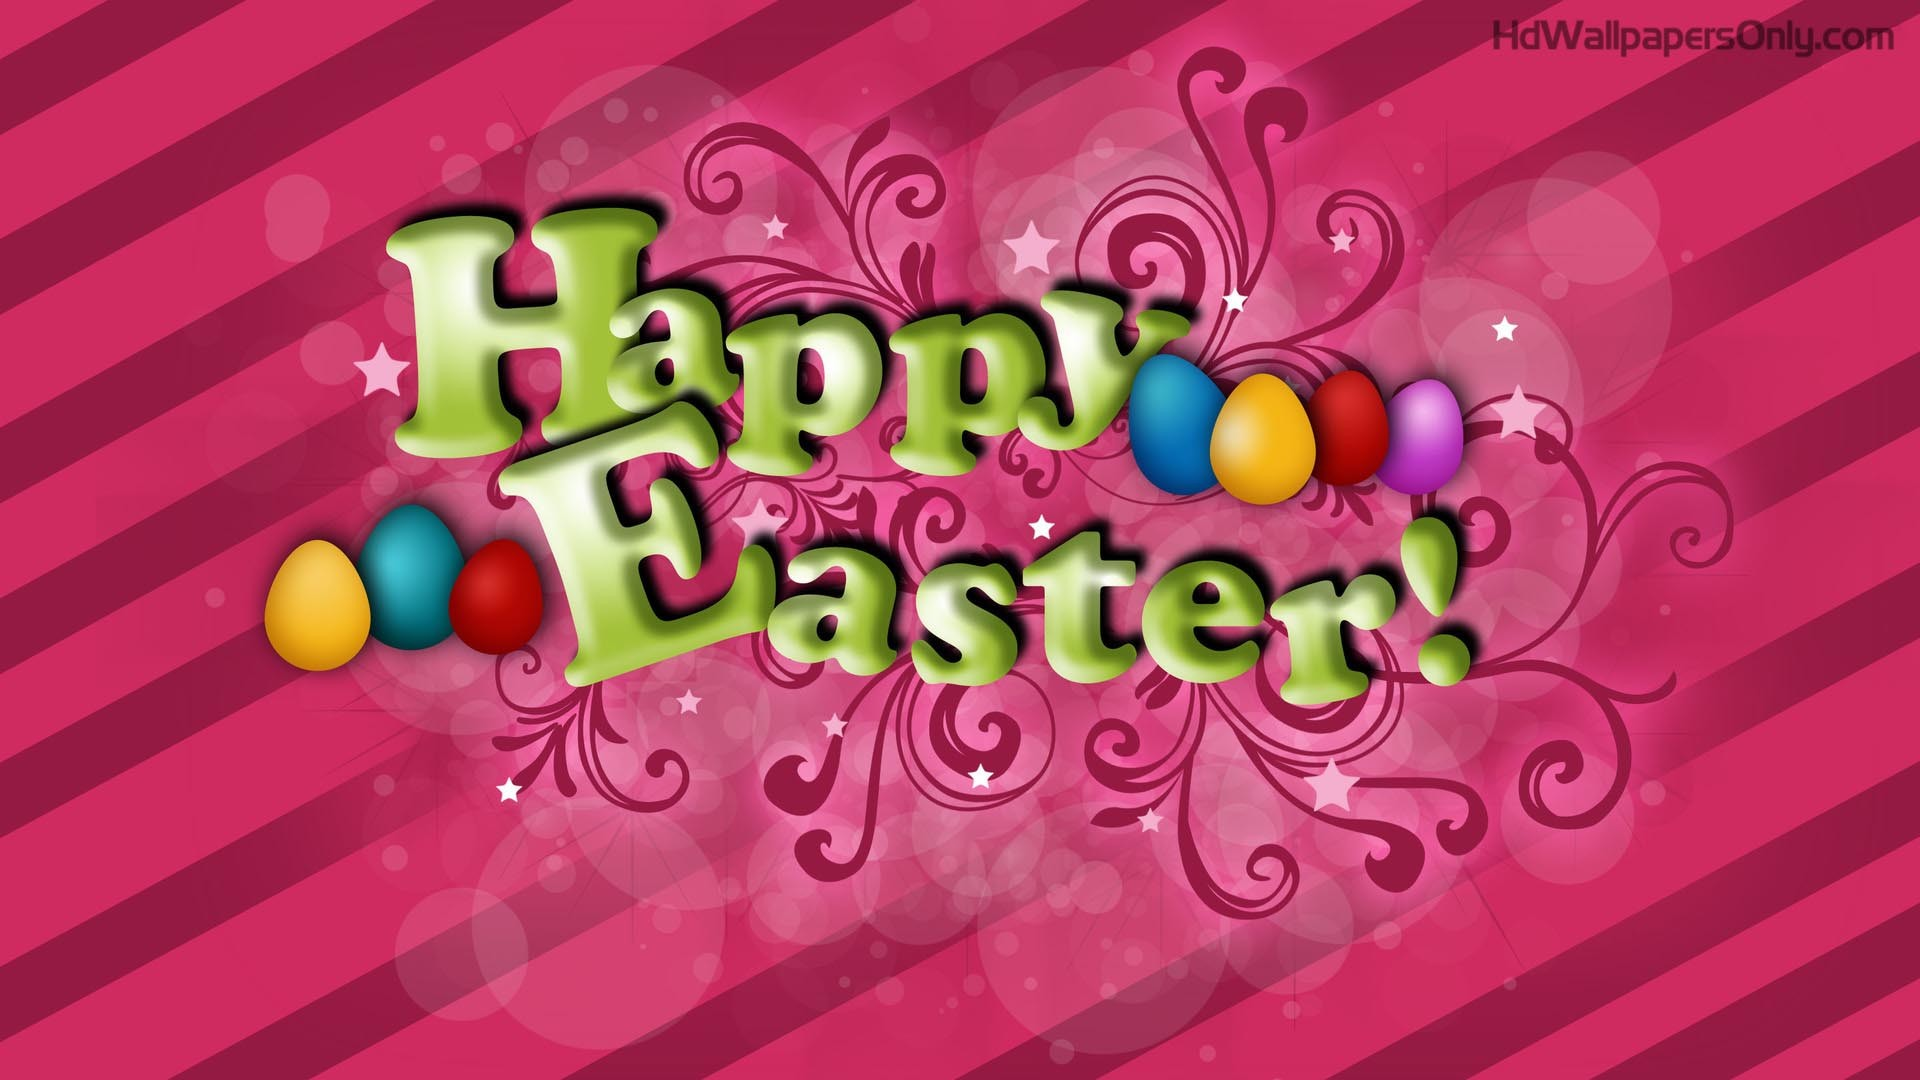 Free Easter Wallpapers HD QualityHD Wallpapers Only